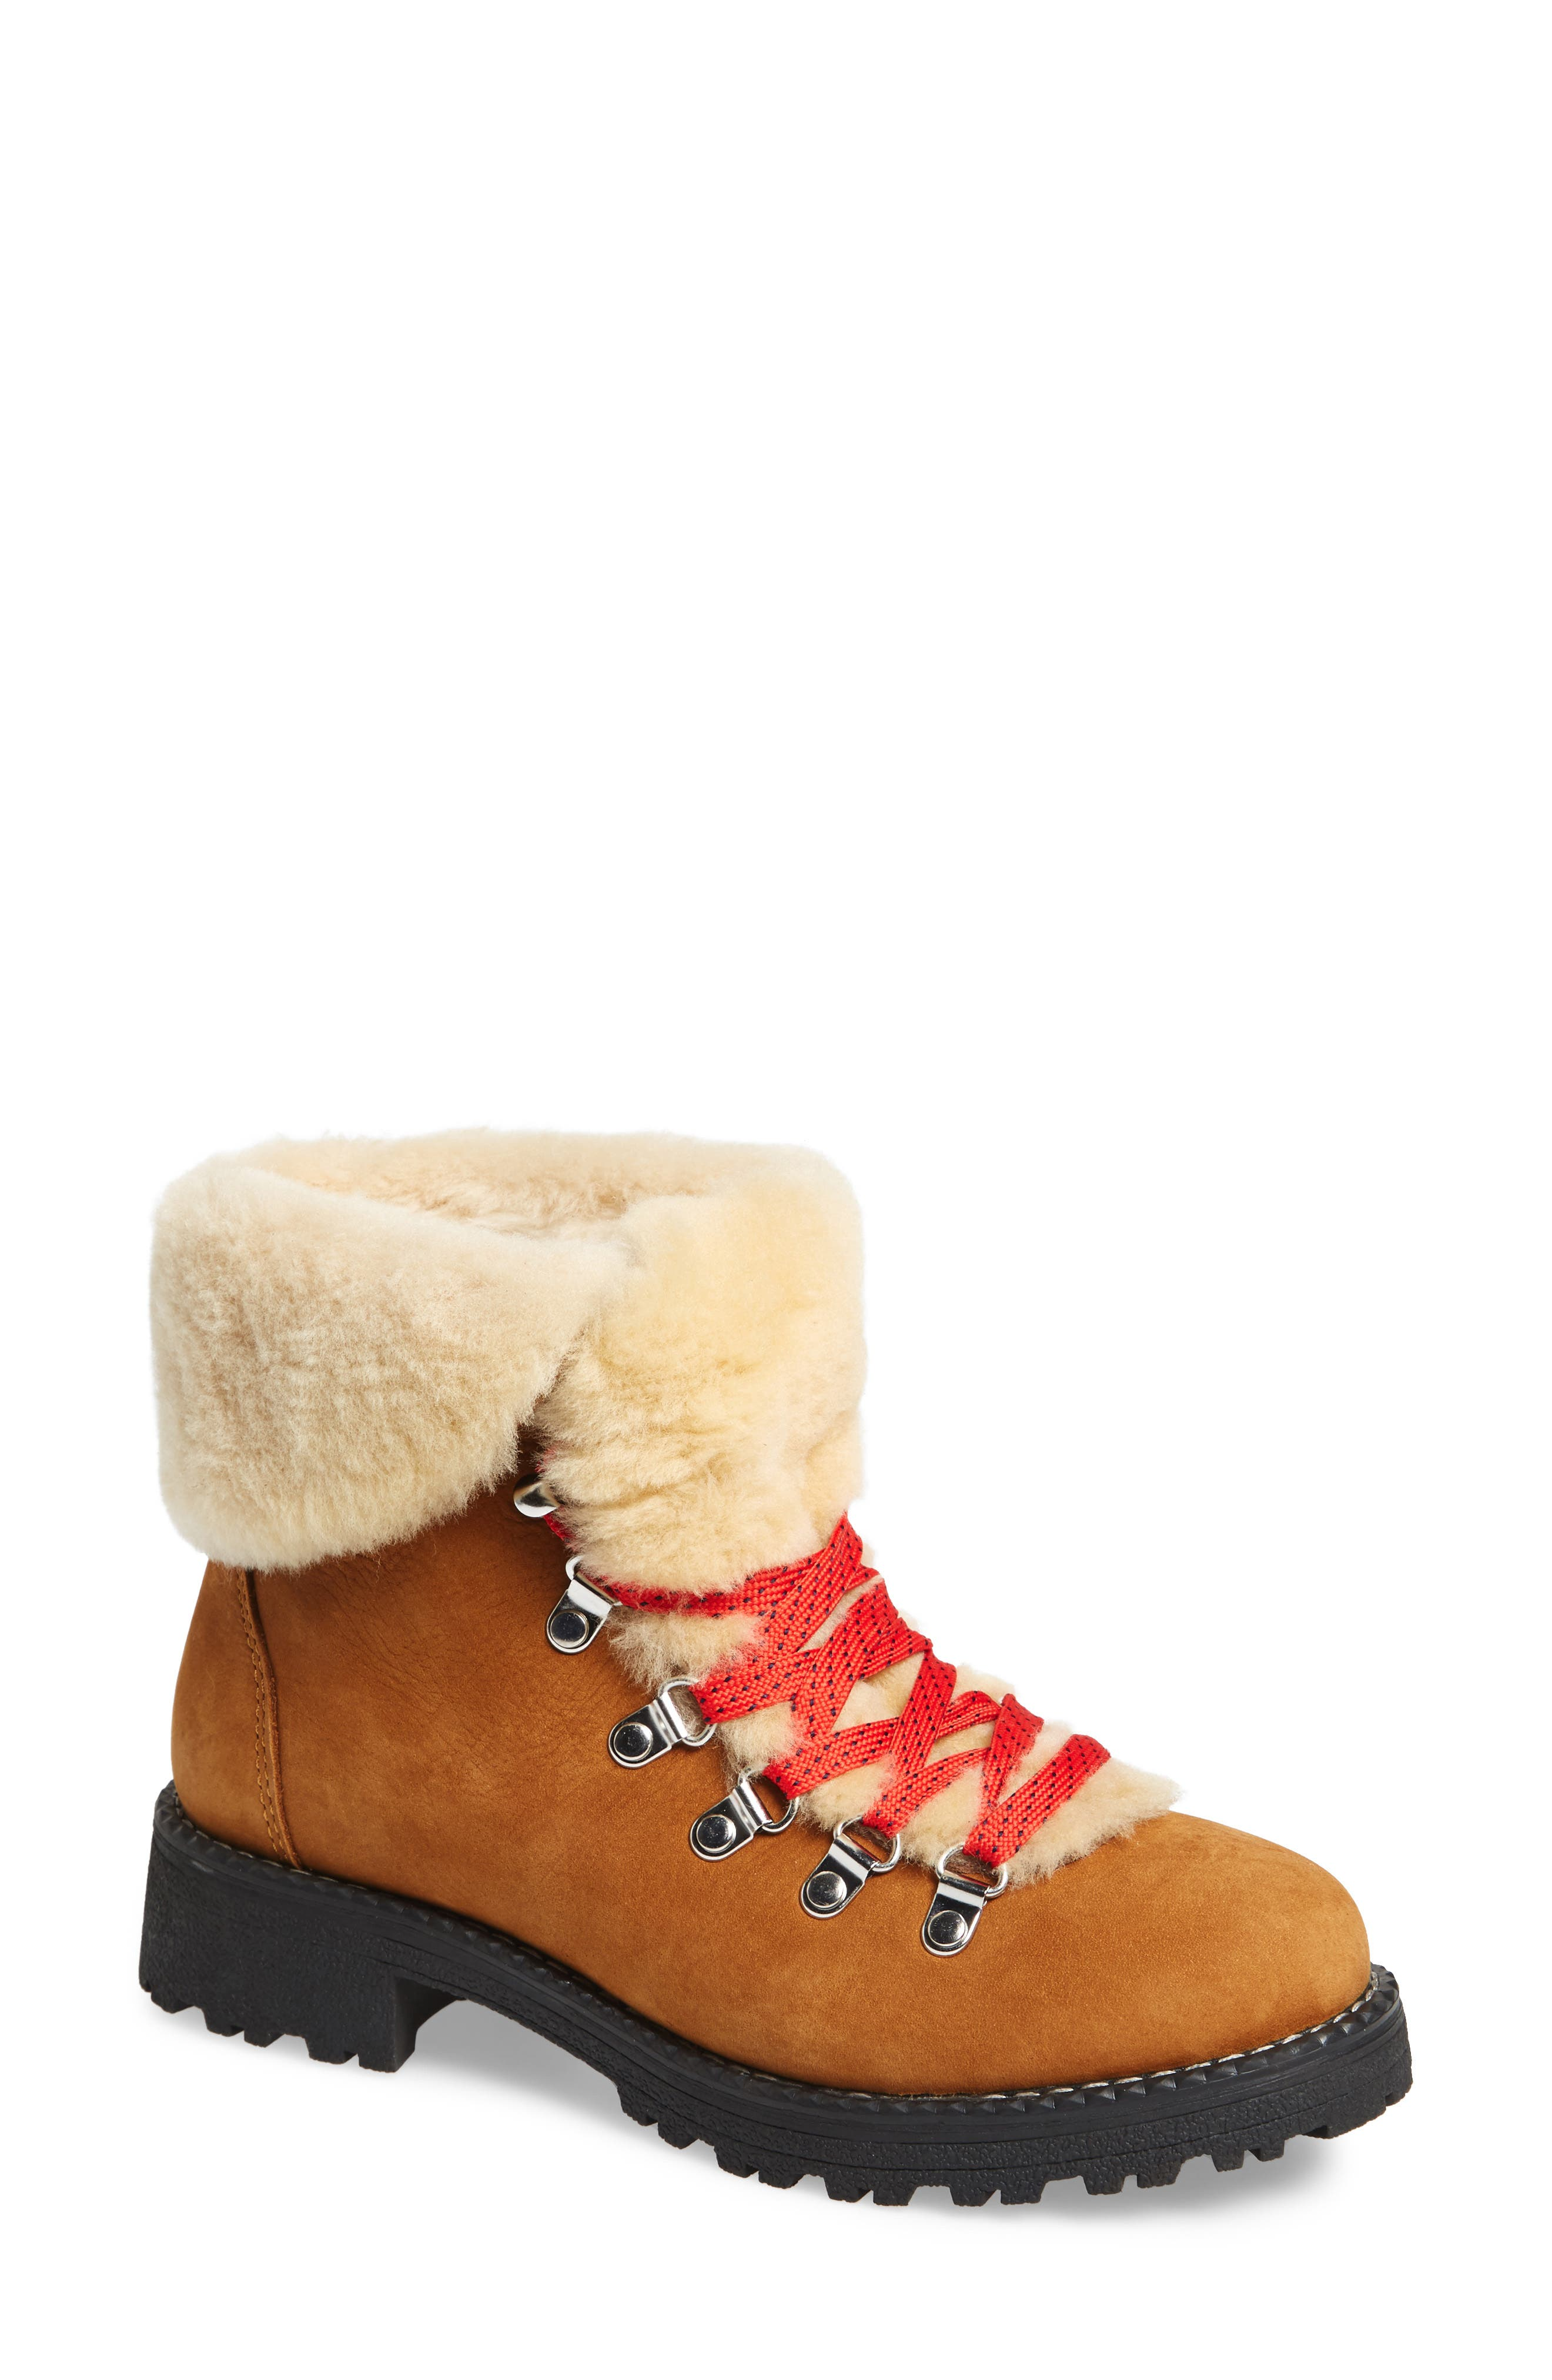 Alternate Image 1 Selected - J.Crew Nordic Genuine Shearling Cuff Winter Boot (Women)